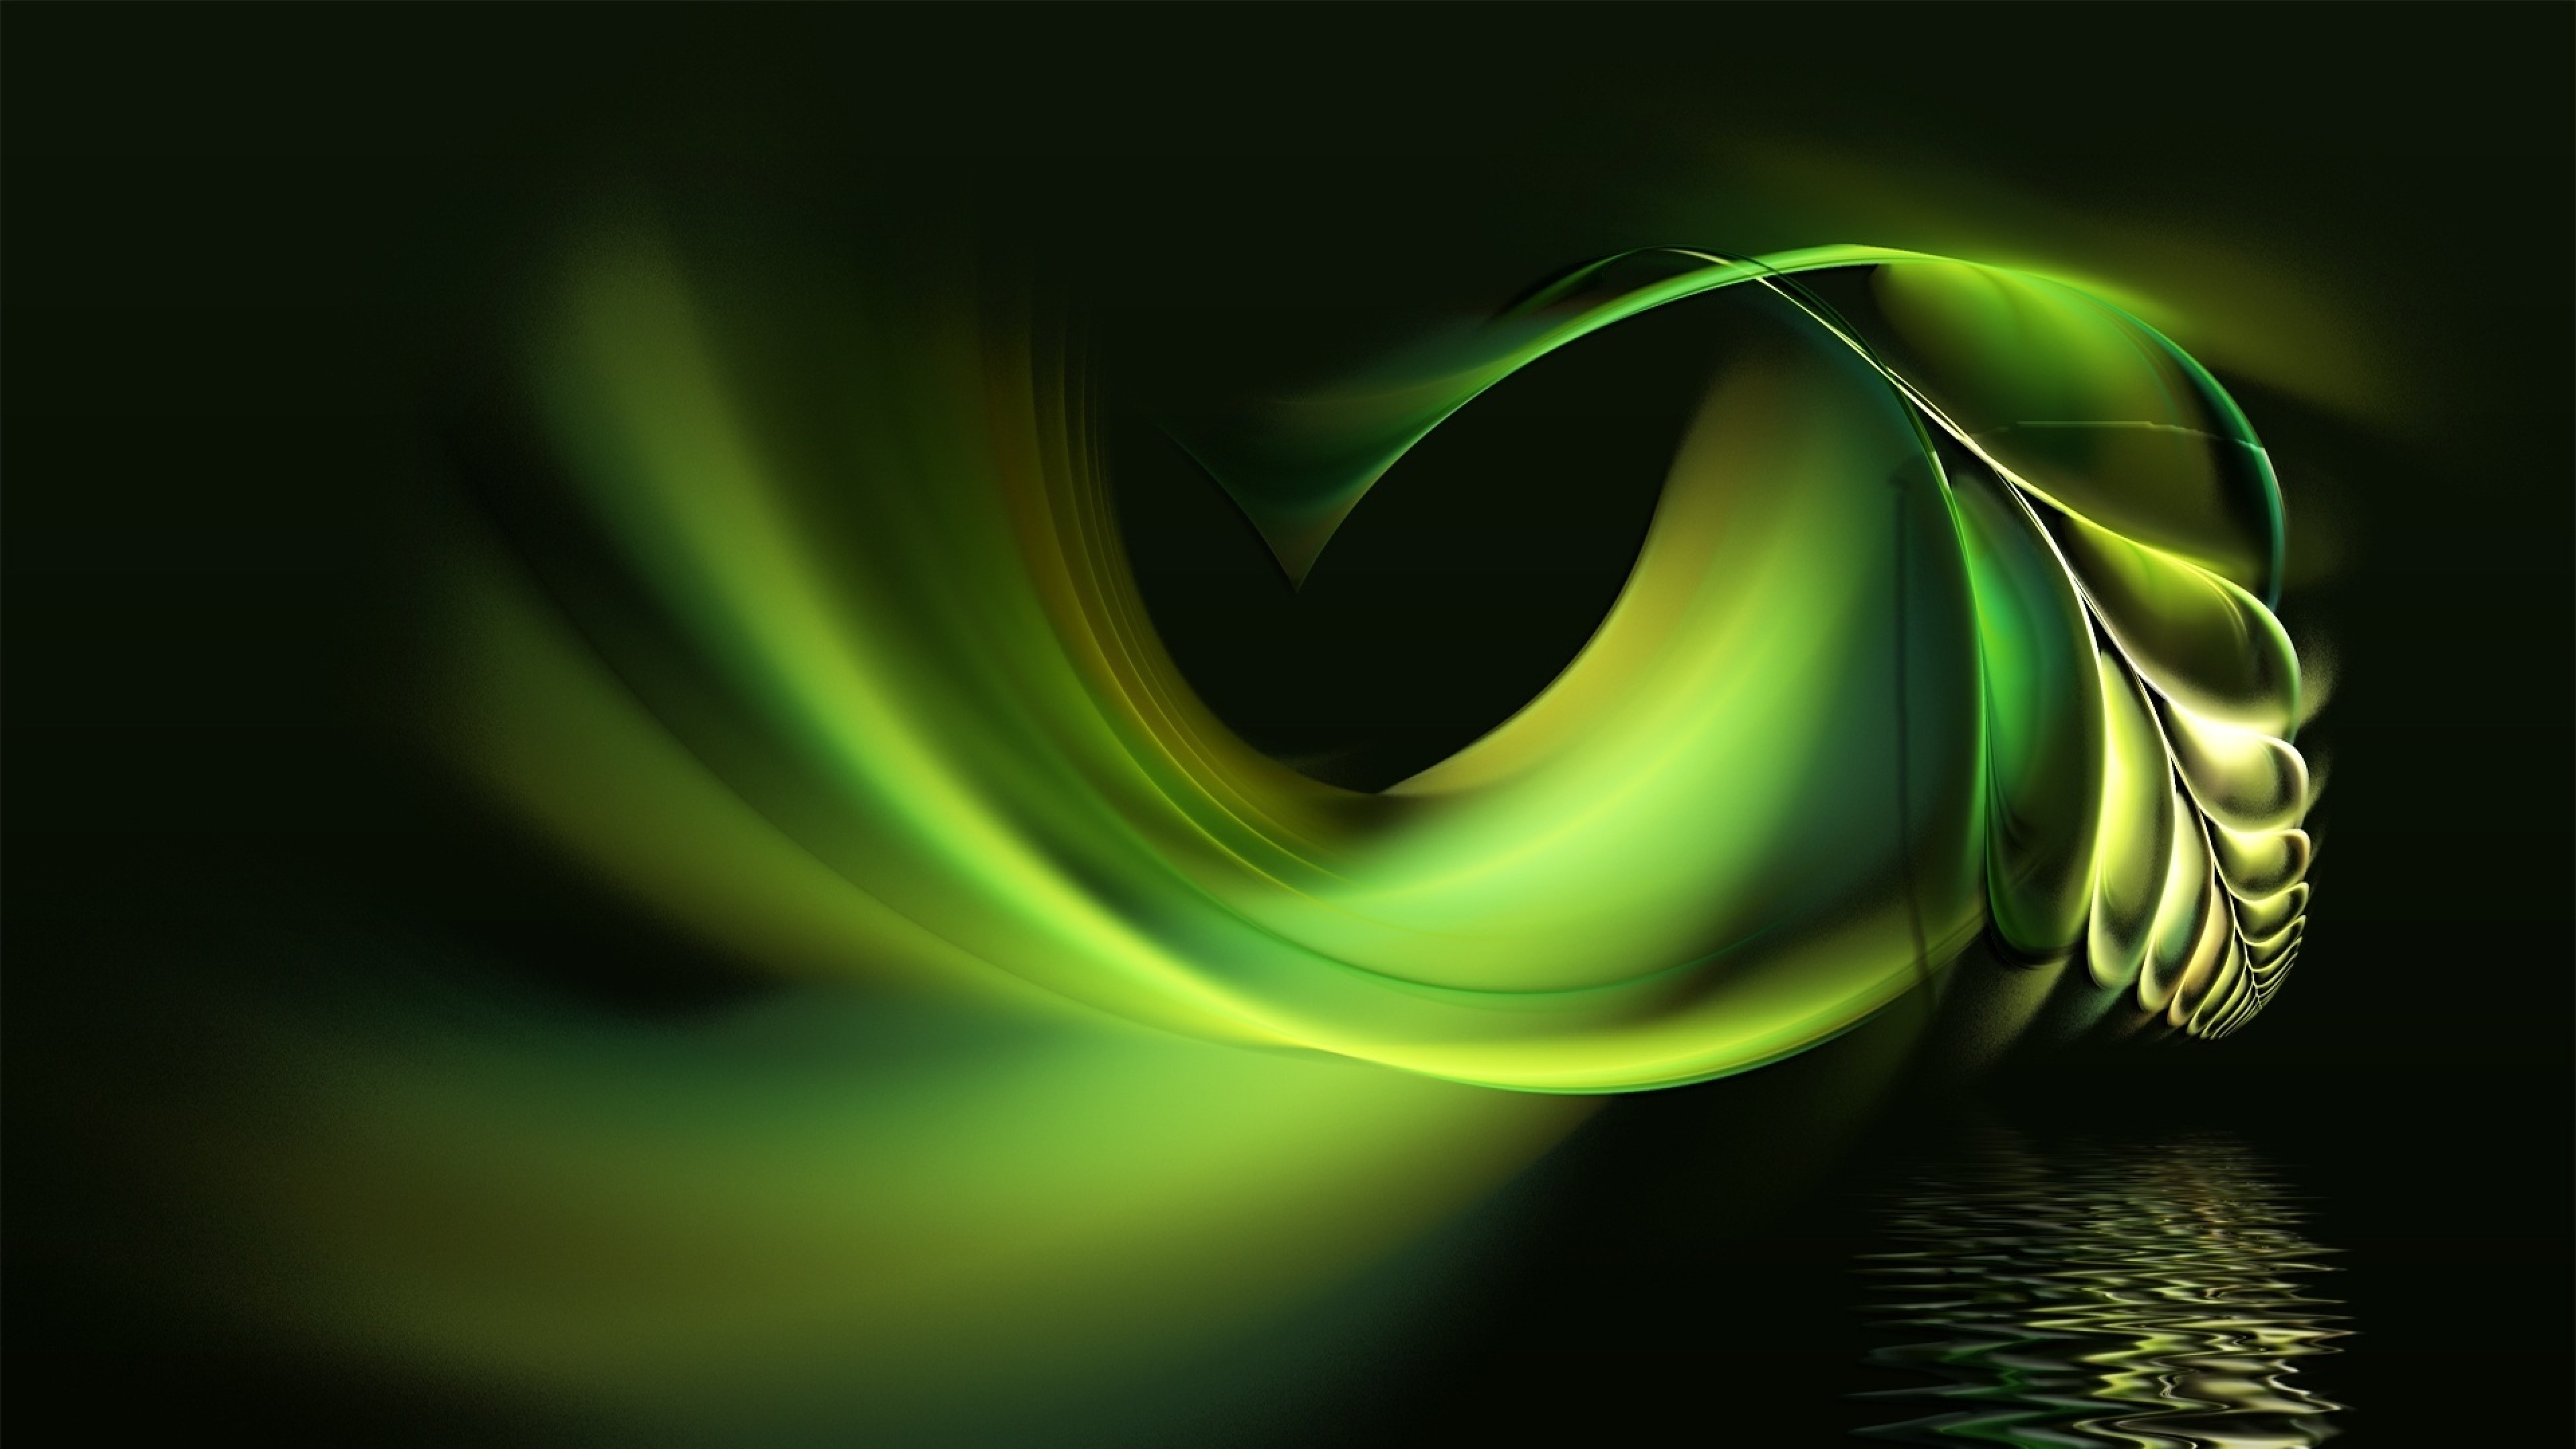 Preview wallpaper black, white, abstract, pen, water, green 3840×2160